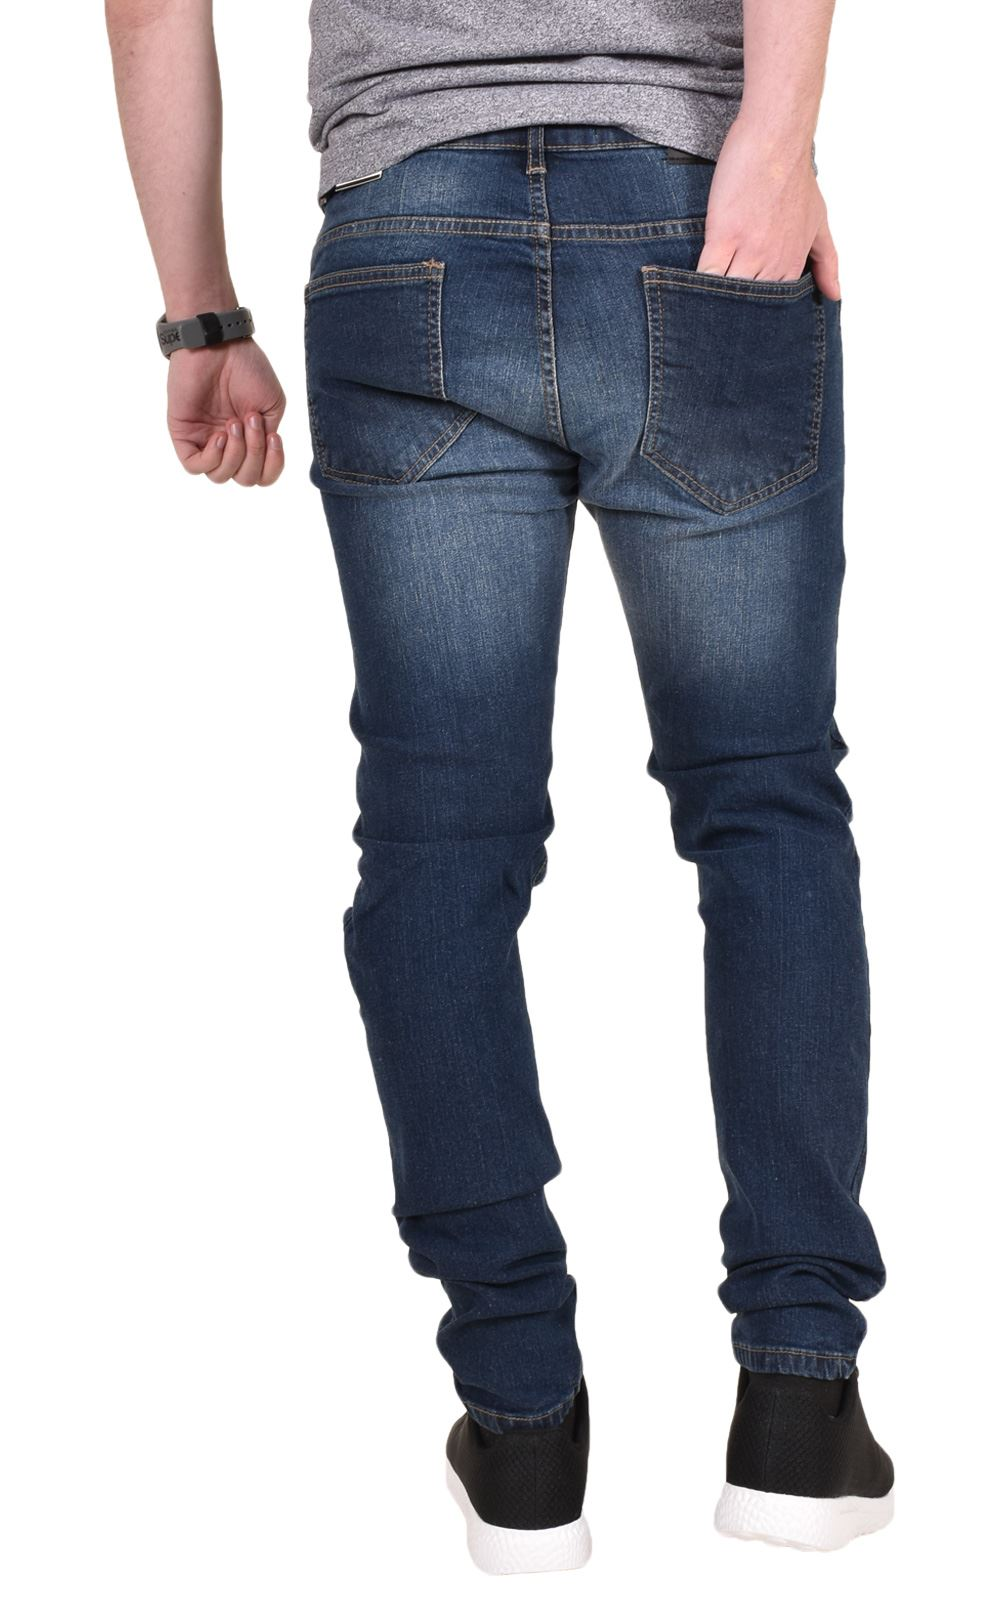 Mens-Ripped-Jeans-Skinny-Slim-Fit-Stretch-Distressed-Denim-Pants-Trousers-28-40 thumbnail 5